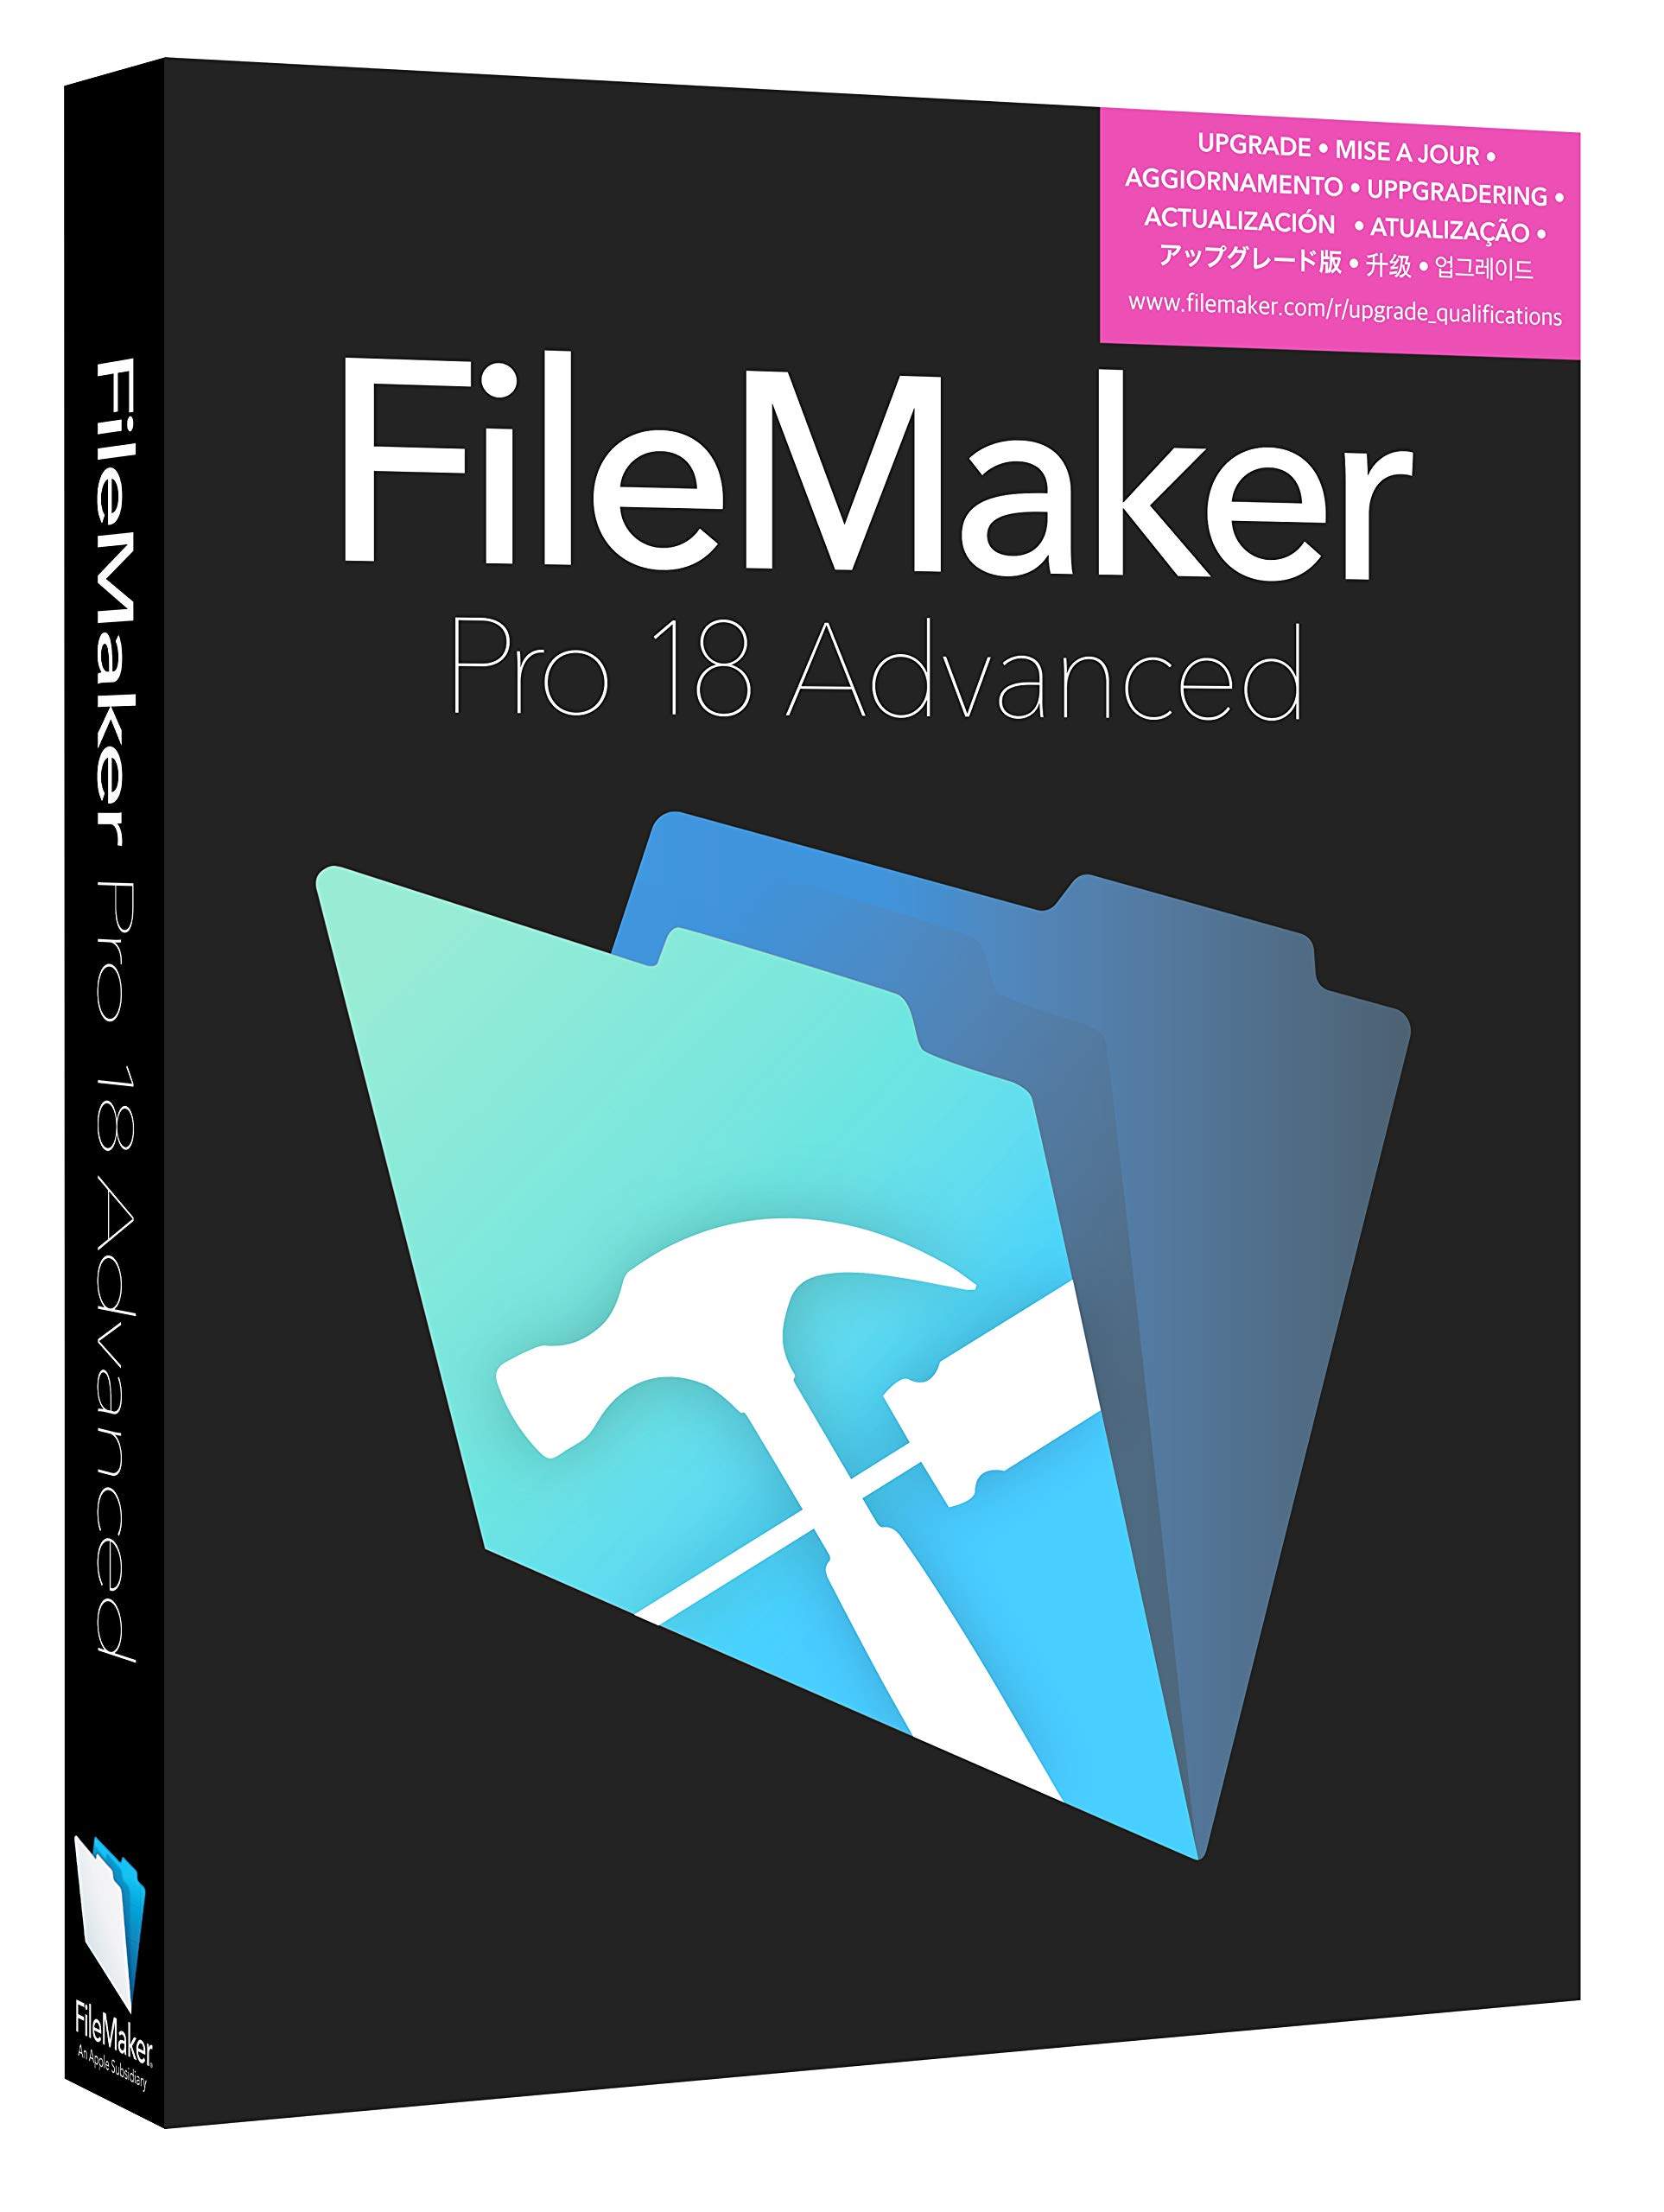 FileMaker Pro 18 Advanced Mac/Win V18 by Filemaker